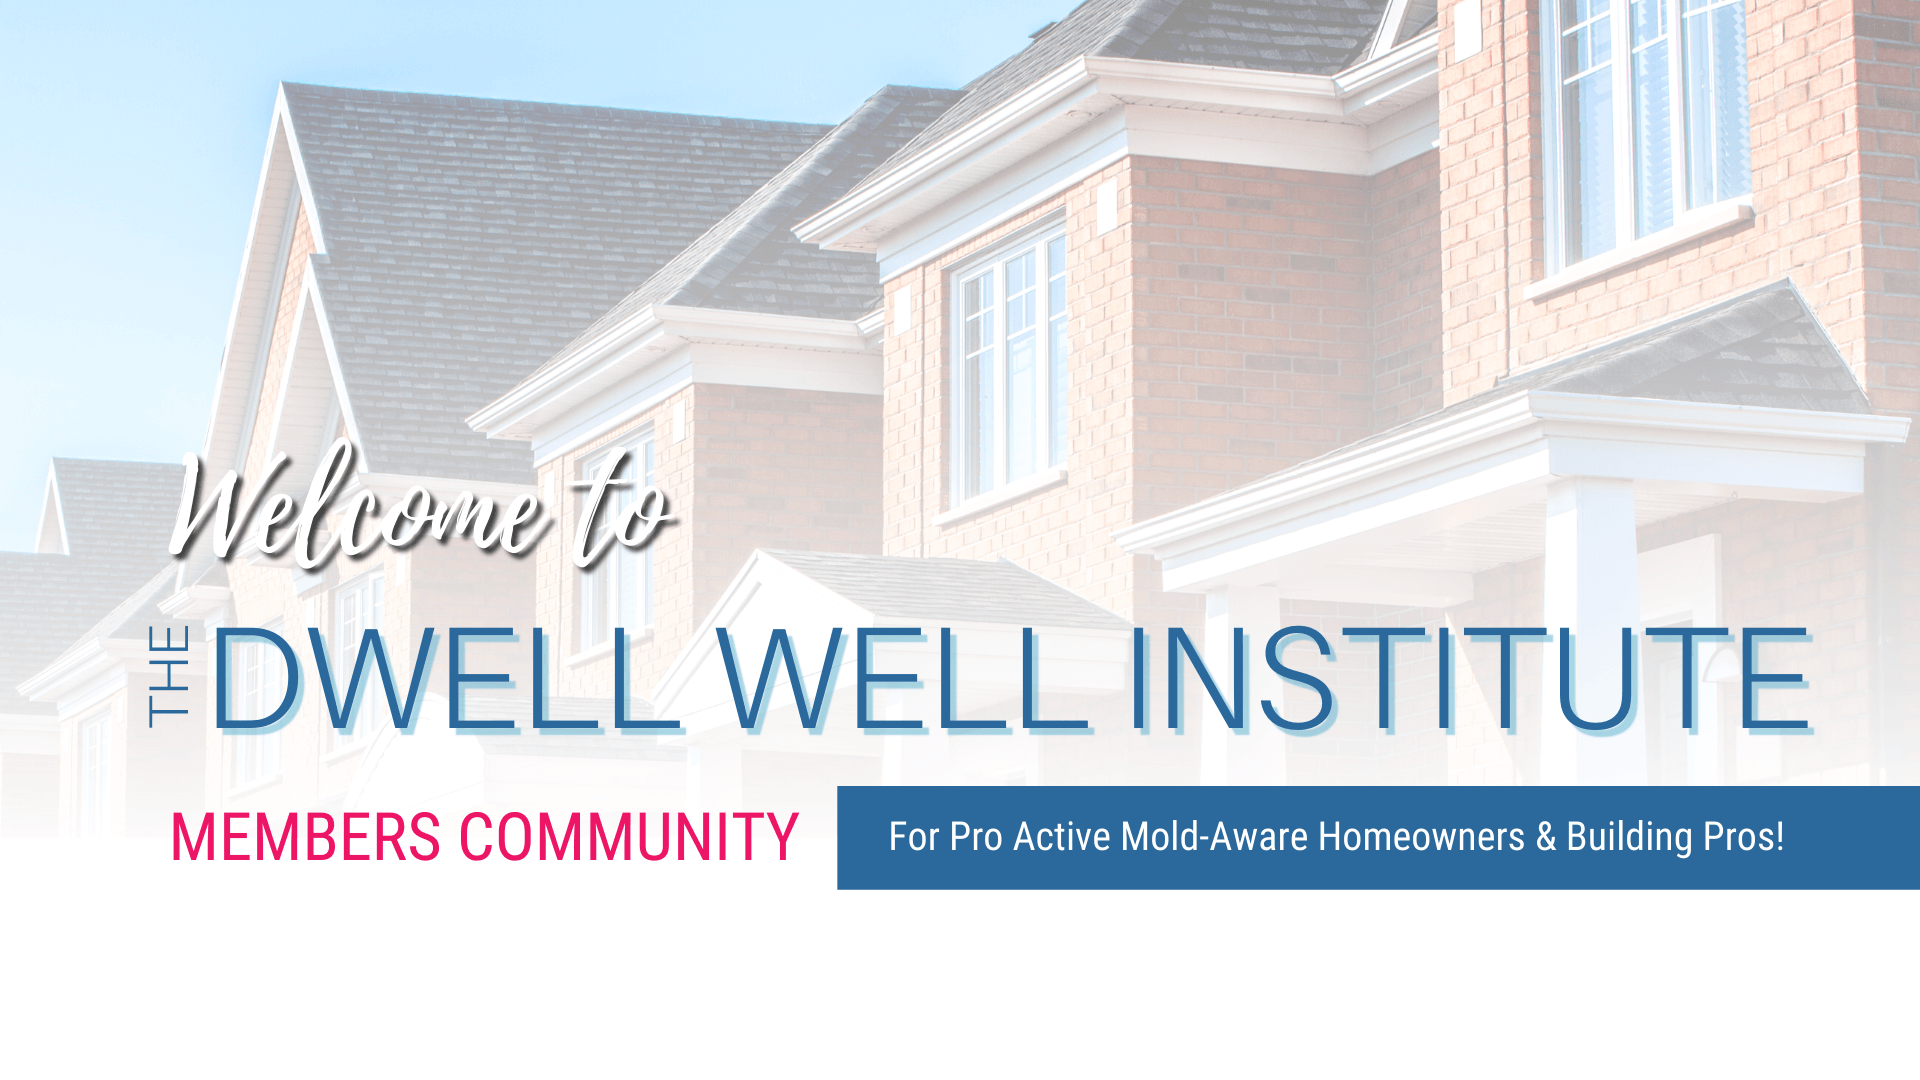 The New Educational Membership and Community for mold-aware homeowners and building pros